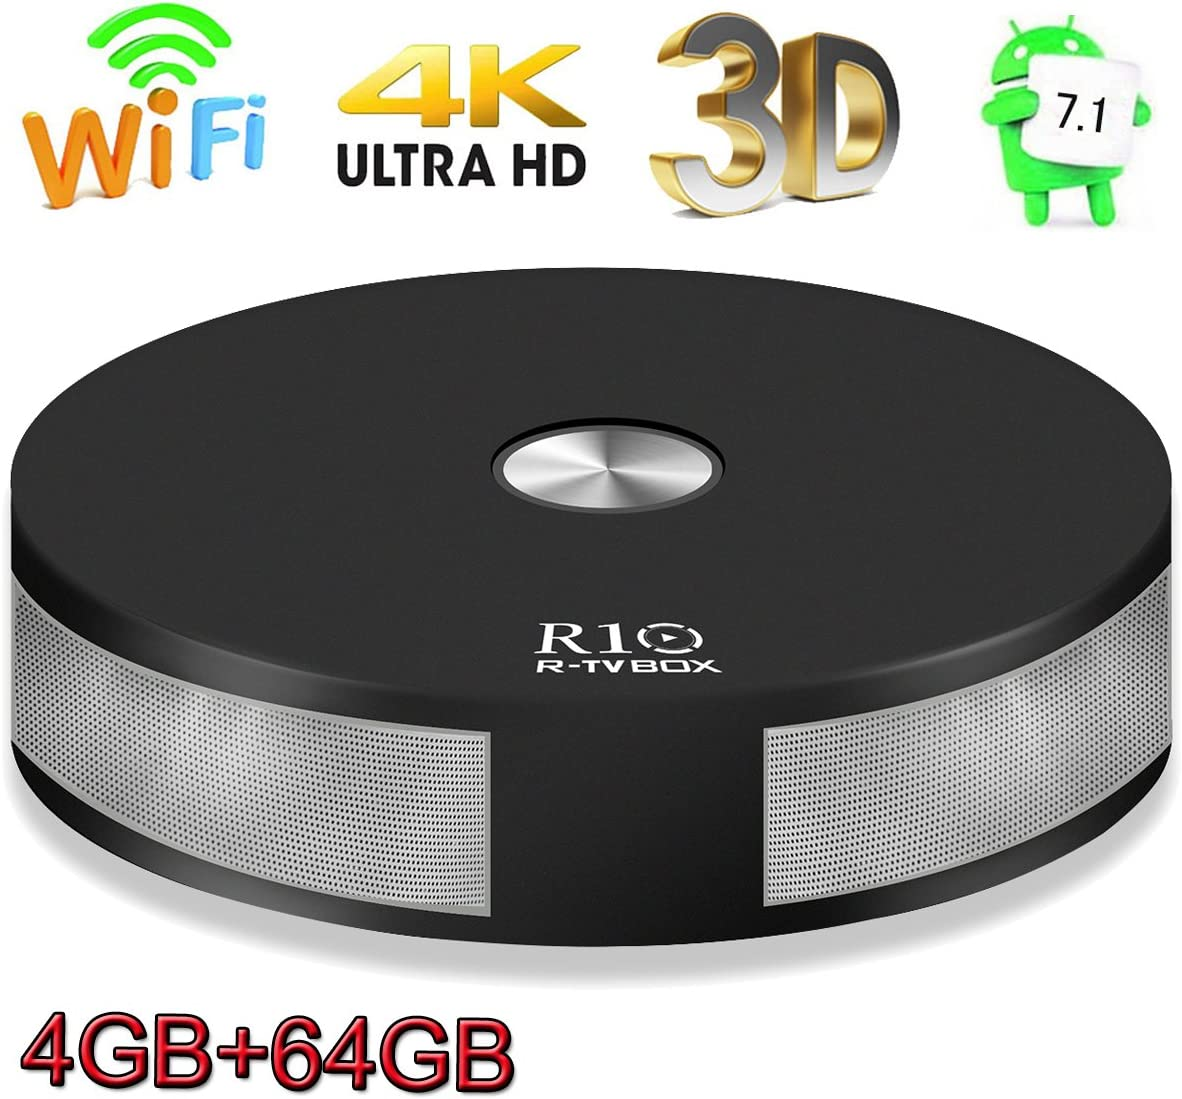 Android TV Box, Super-VIP R10 Smart 4K TV Box Android 7.1 RK3328 Quad Core Lan 1000M 4GB DDR3 64GB Bluetooth 4.1 Dual 2.4G/5G Dual Wifi Set Top Boxes 3D 4K Ultra HD